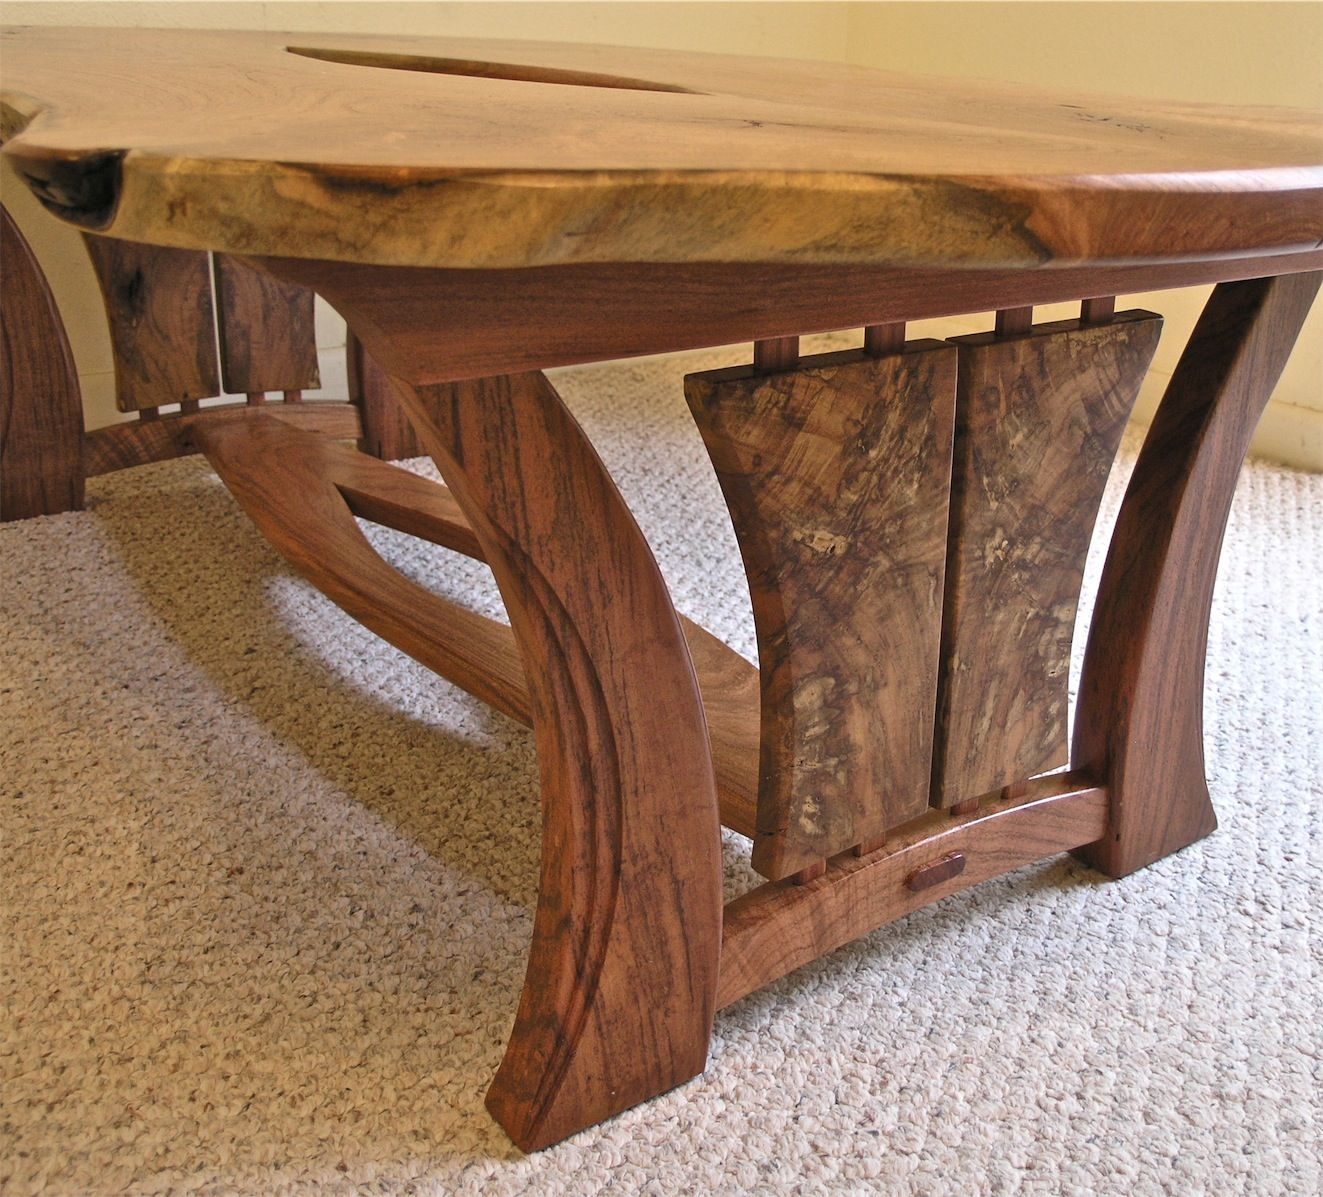 This table is my first completed piece in 2013 it is also my first live edge table where i Homemade wooden furniture